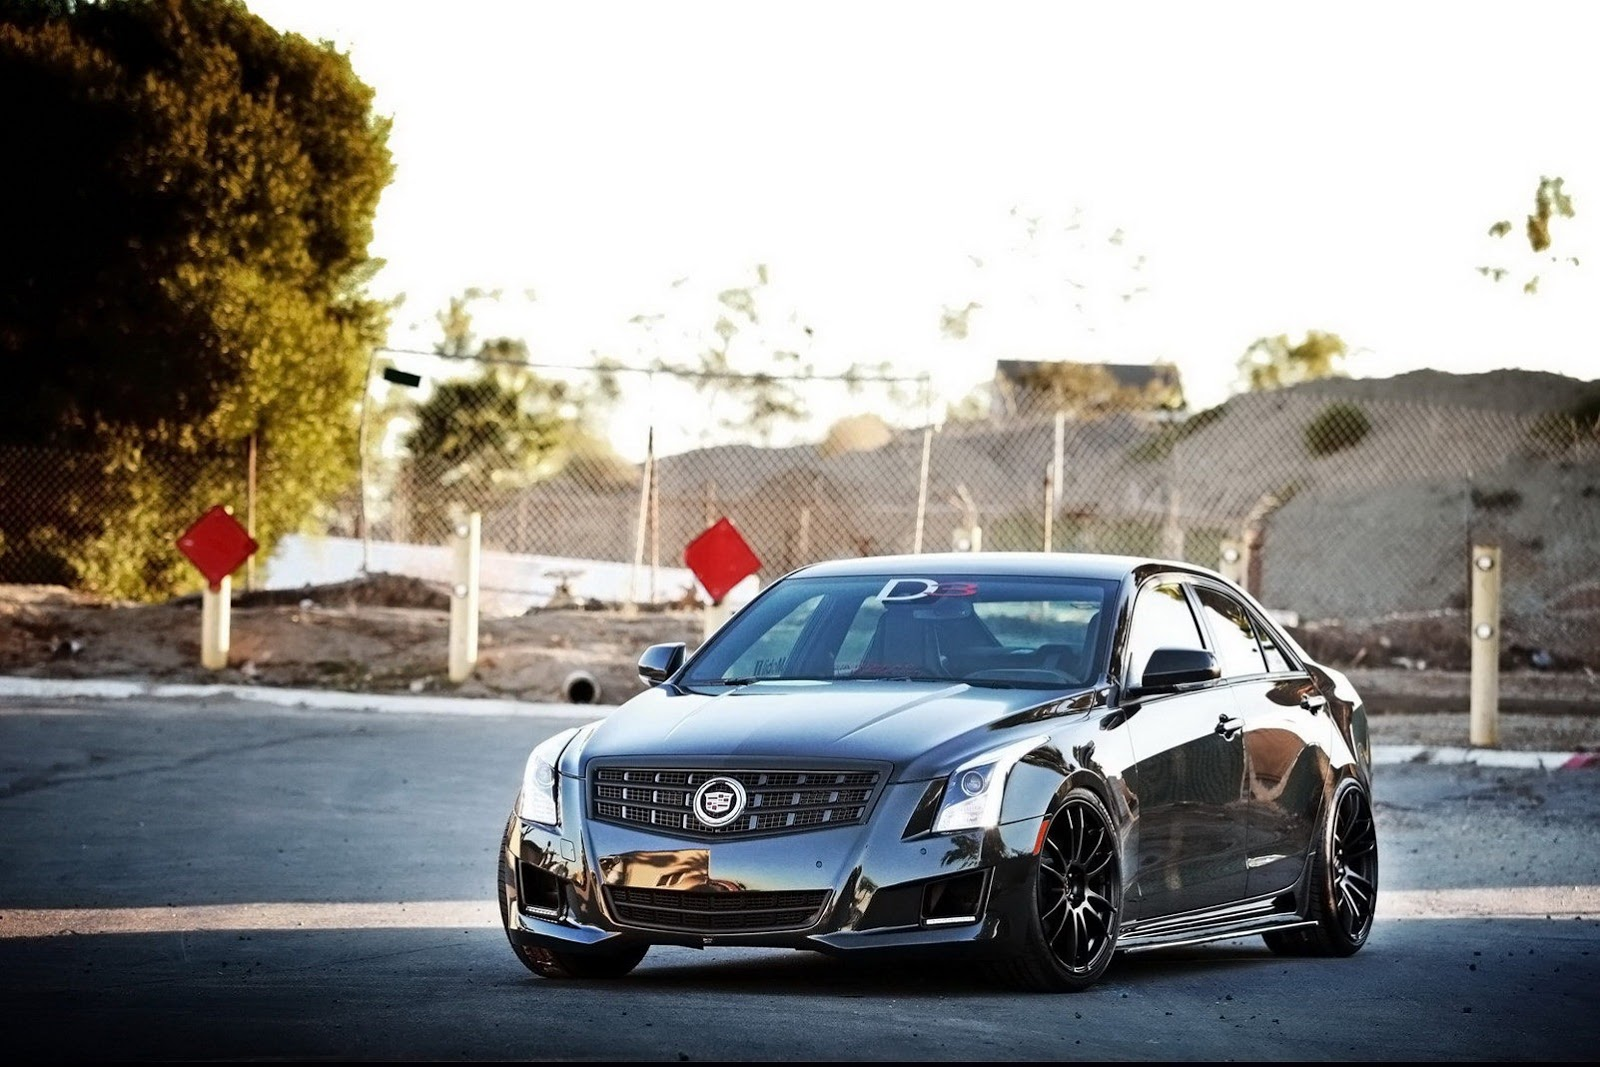 Cadillac Ats 2.0 T >> 2013 Cadillac ATS Engines: 270 HP 2.0L Turbo, 2.5L and 3 ...